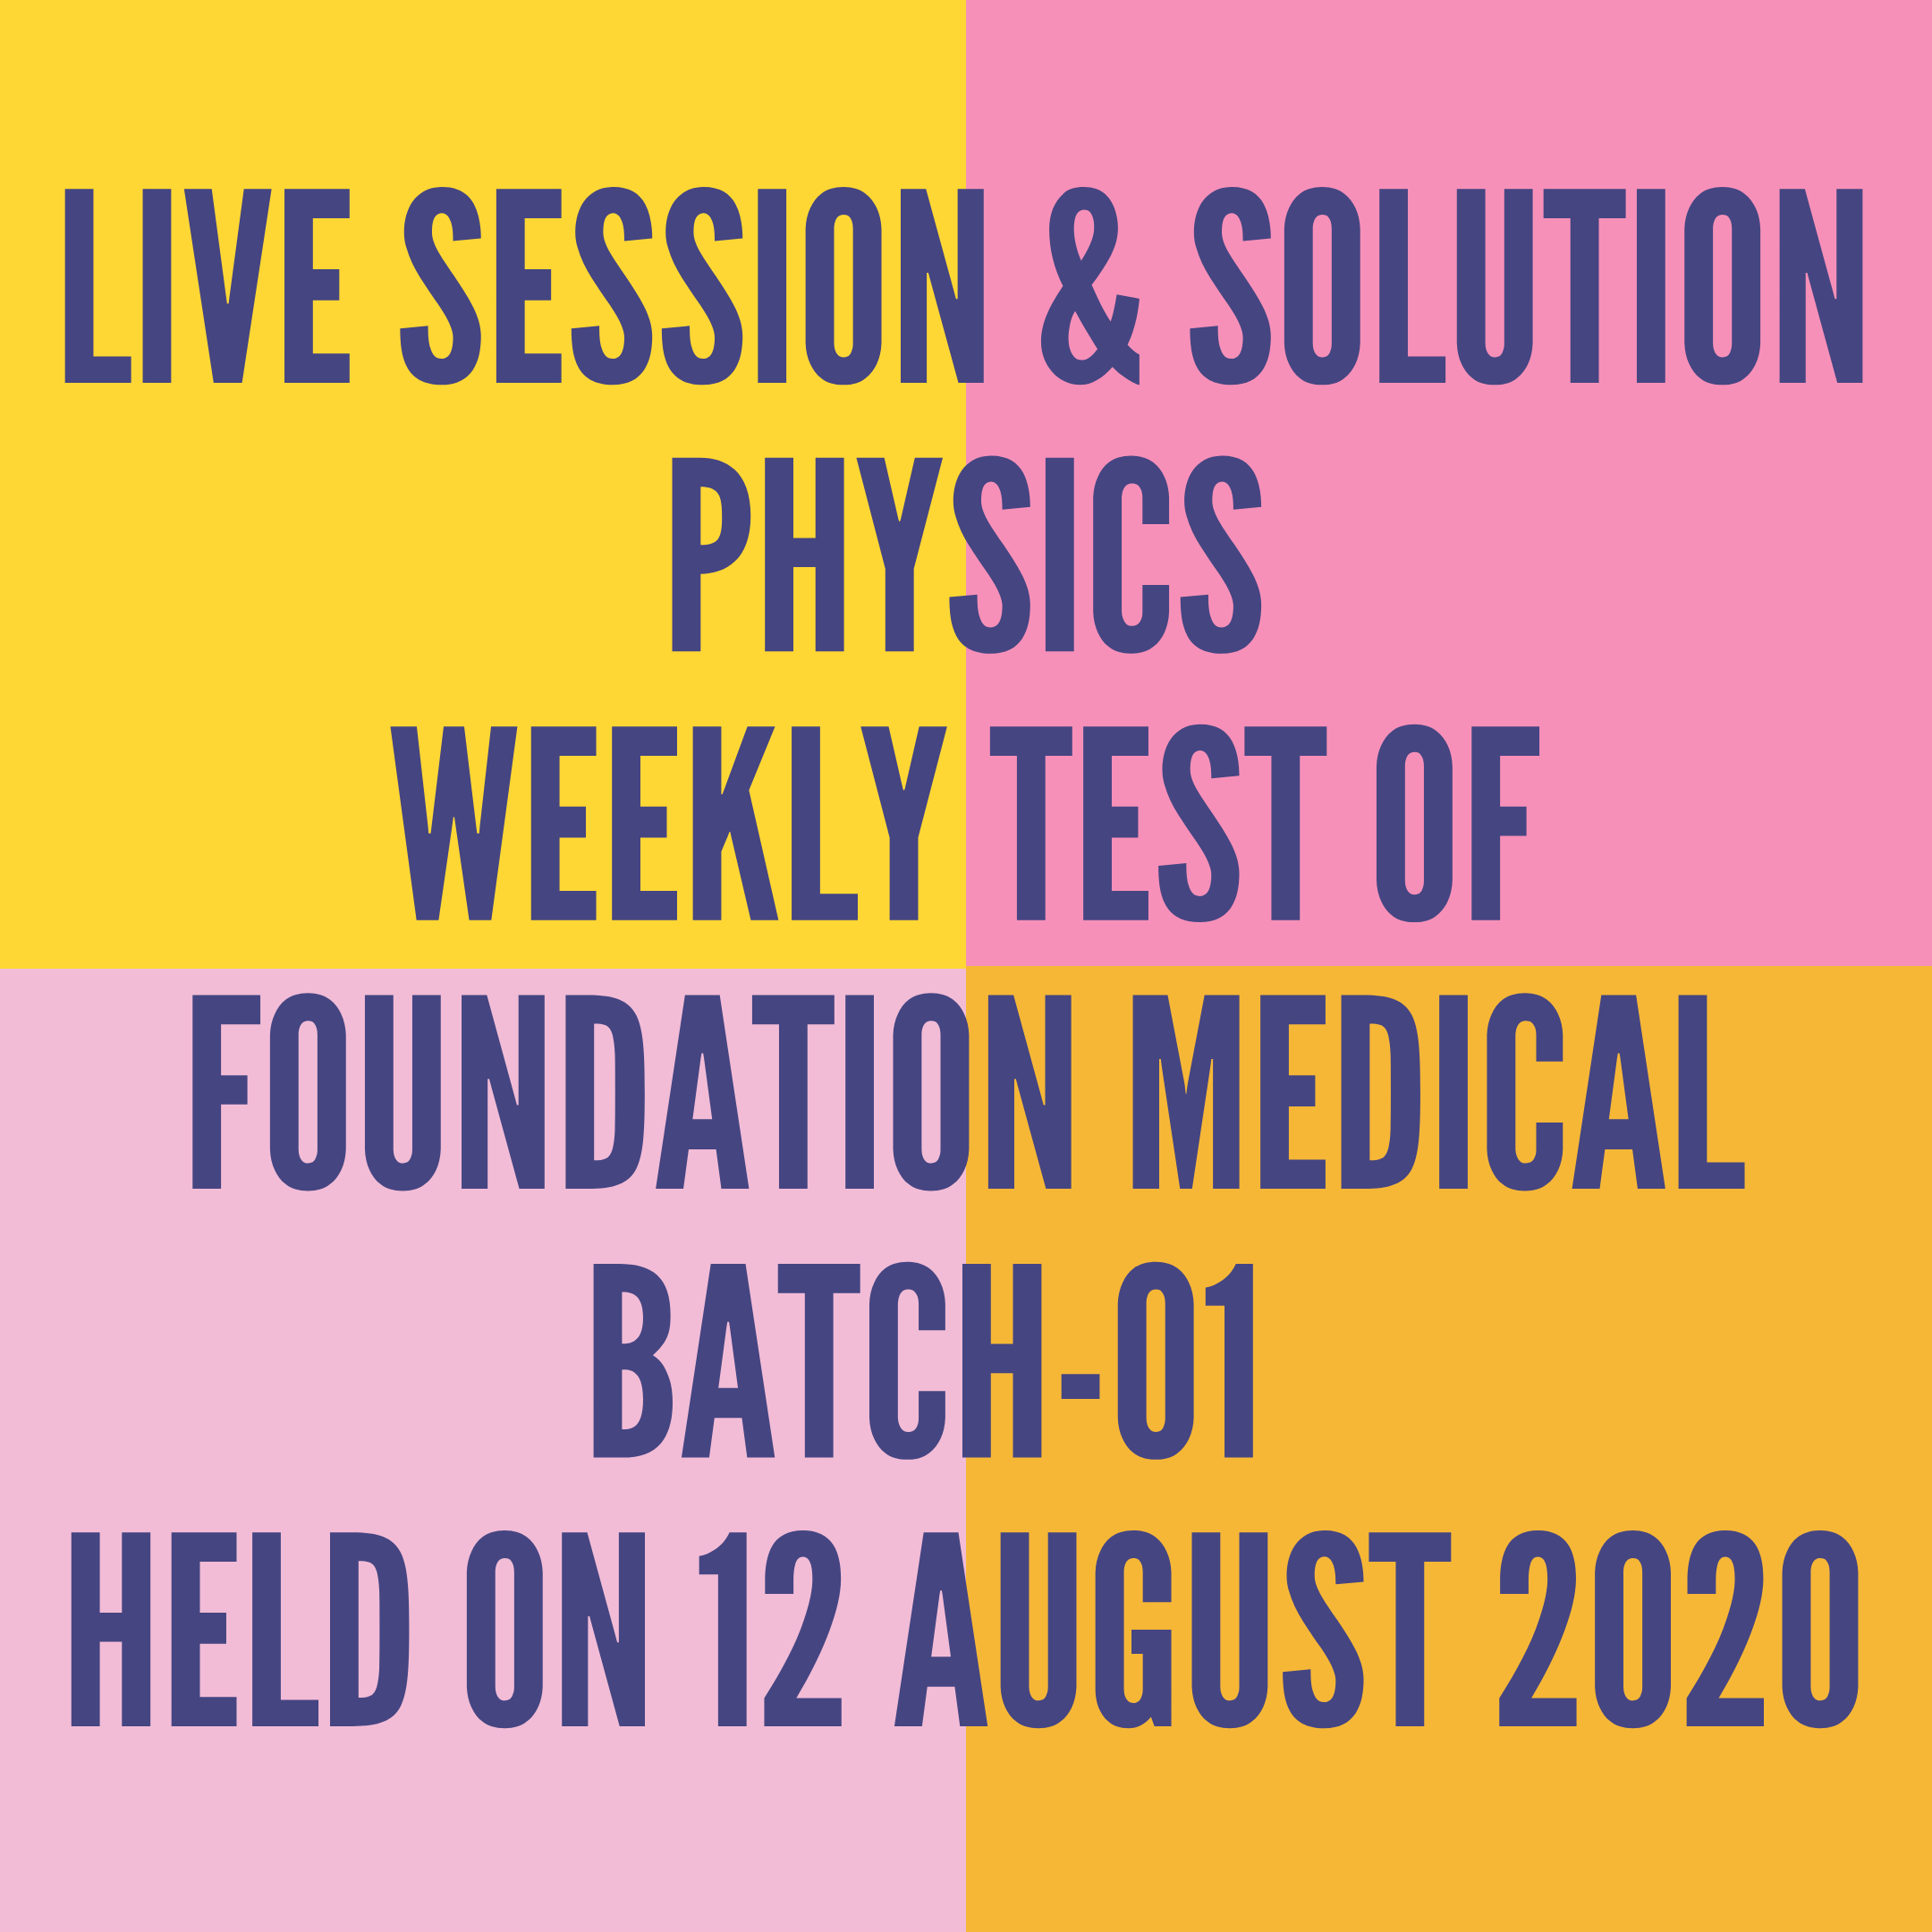 LIVE SESSION & SOLUTION PHYSICS WEEKLY TEST OF FOUNDATION MEDICAL BATCH-01  HELD ON 12 AUGUST 2020